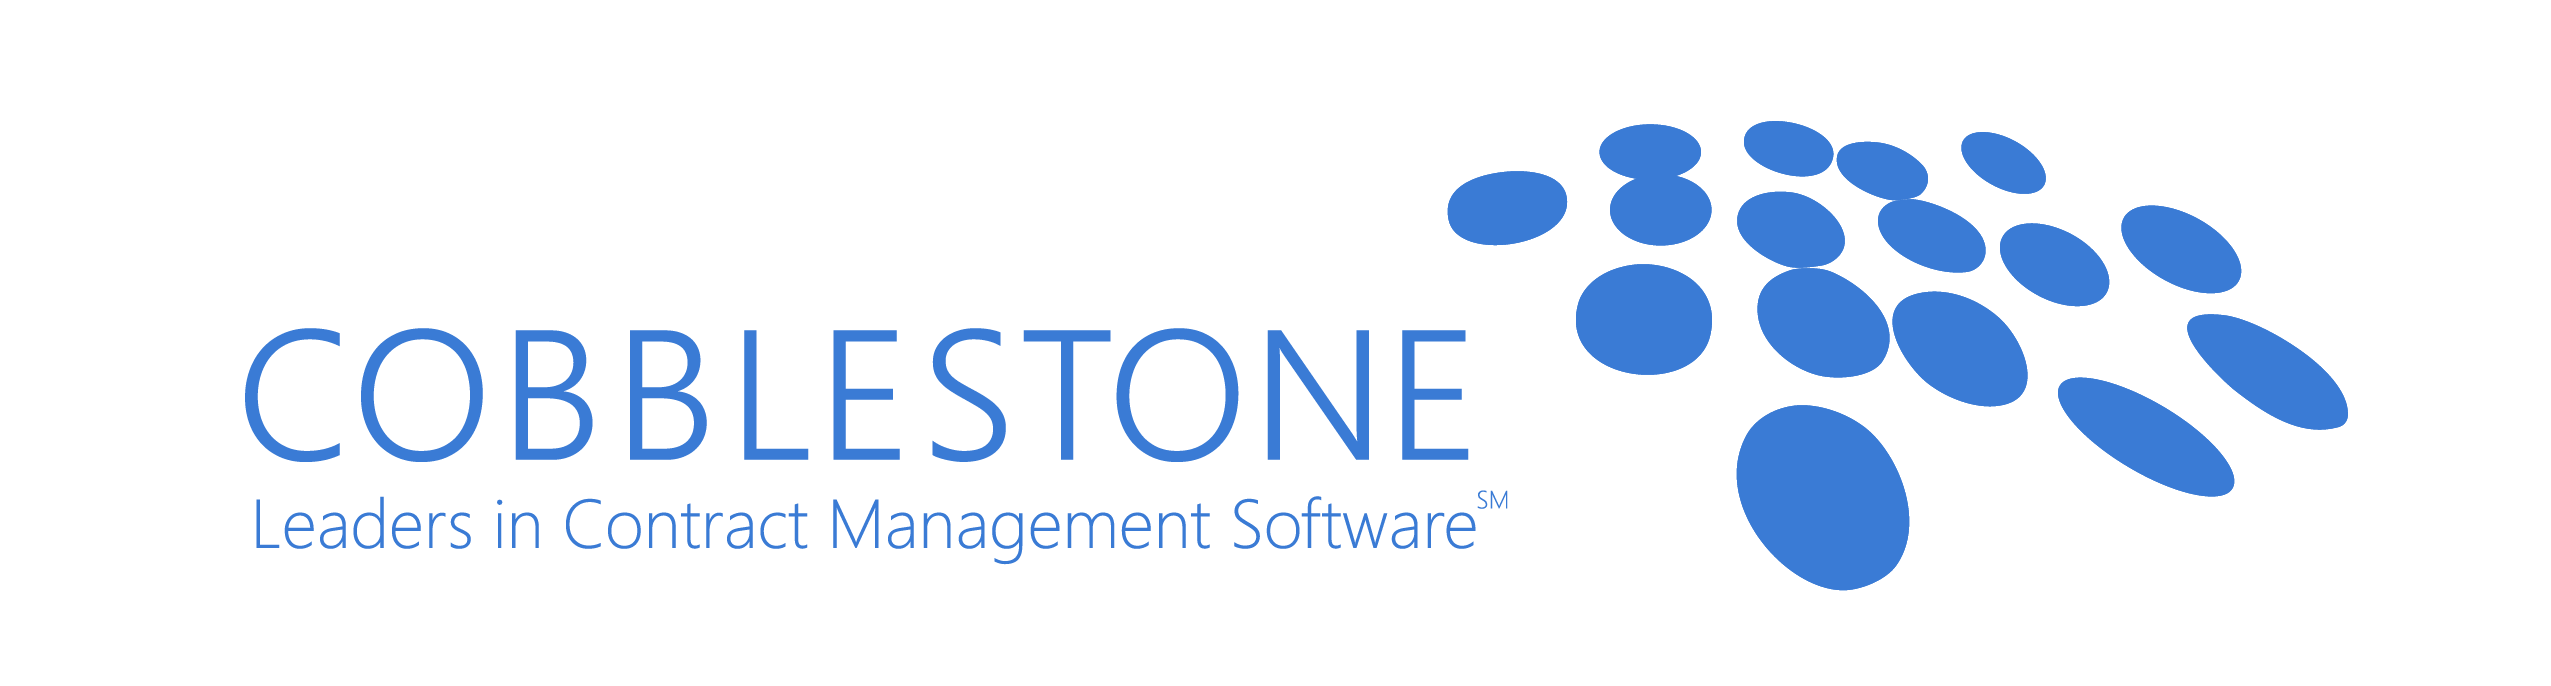 Government Contract Management Software | CobbleStone Software